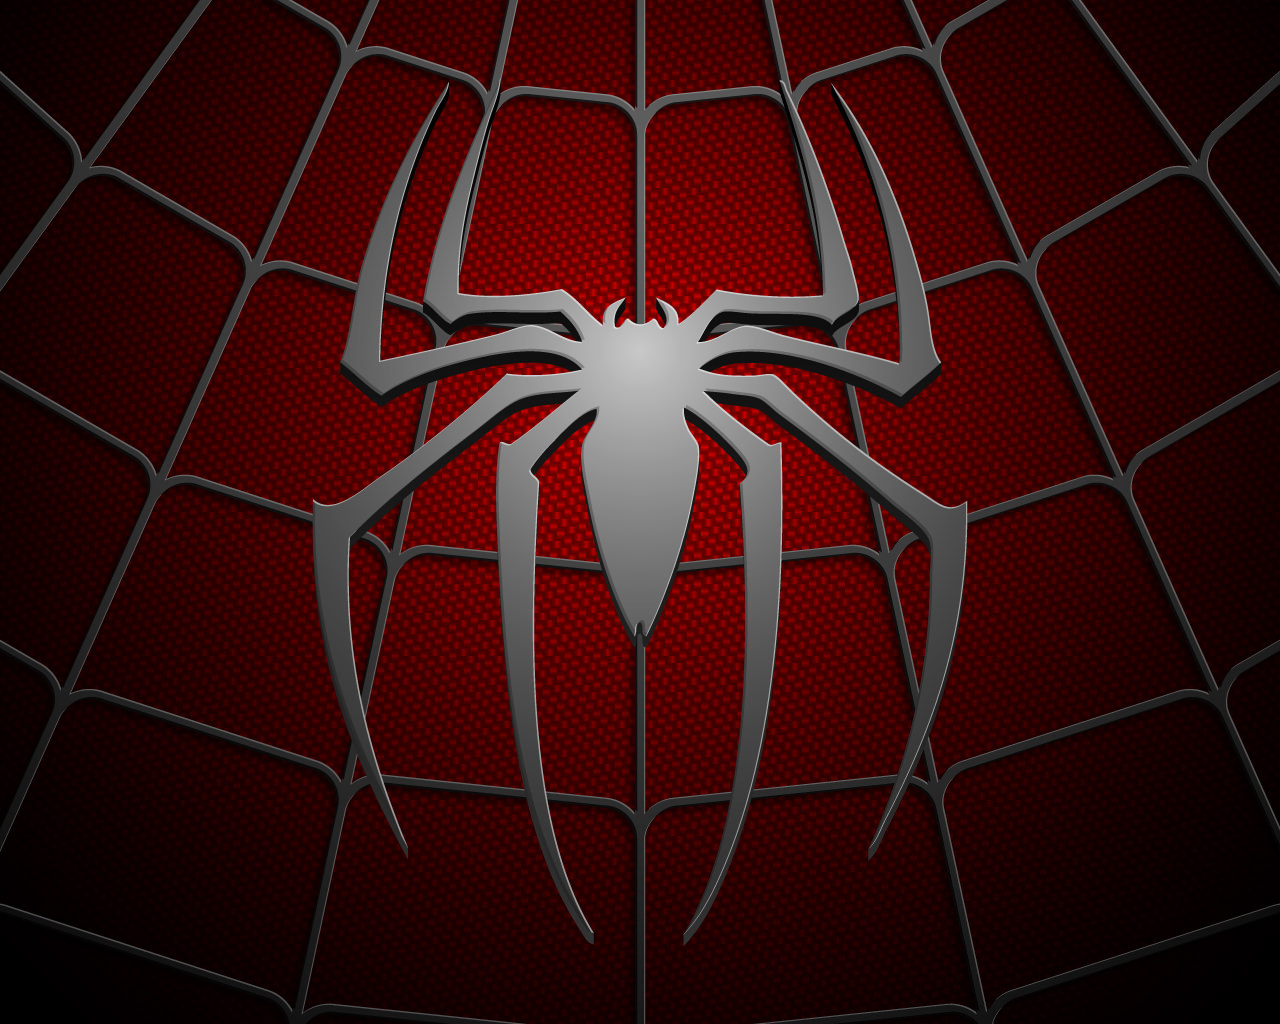 The amazing spider man logo - photo#43